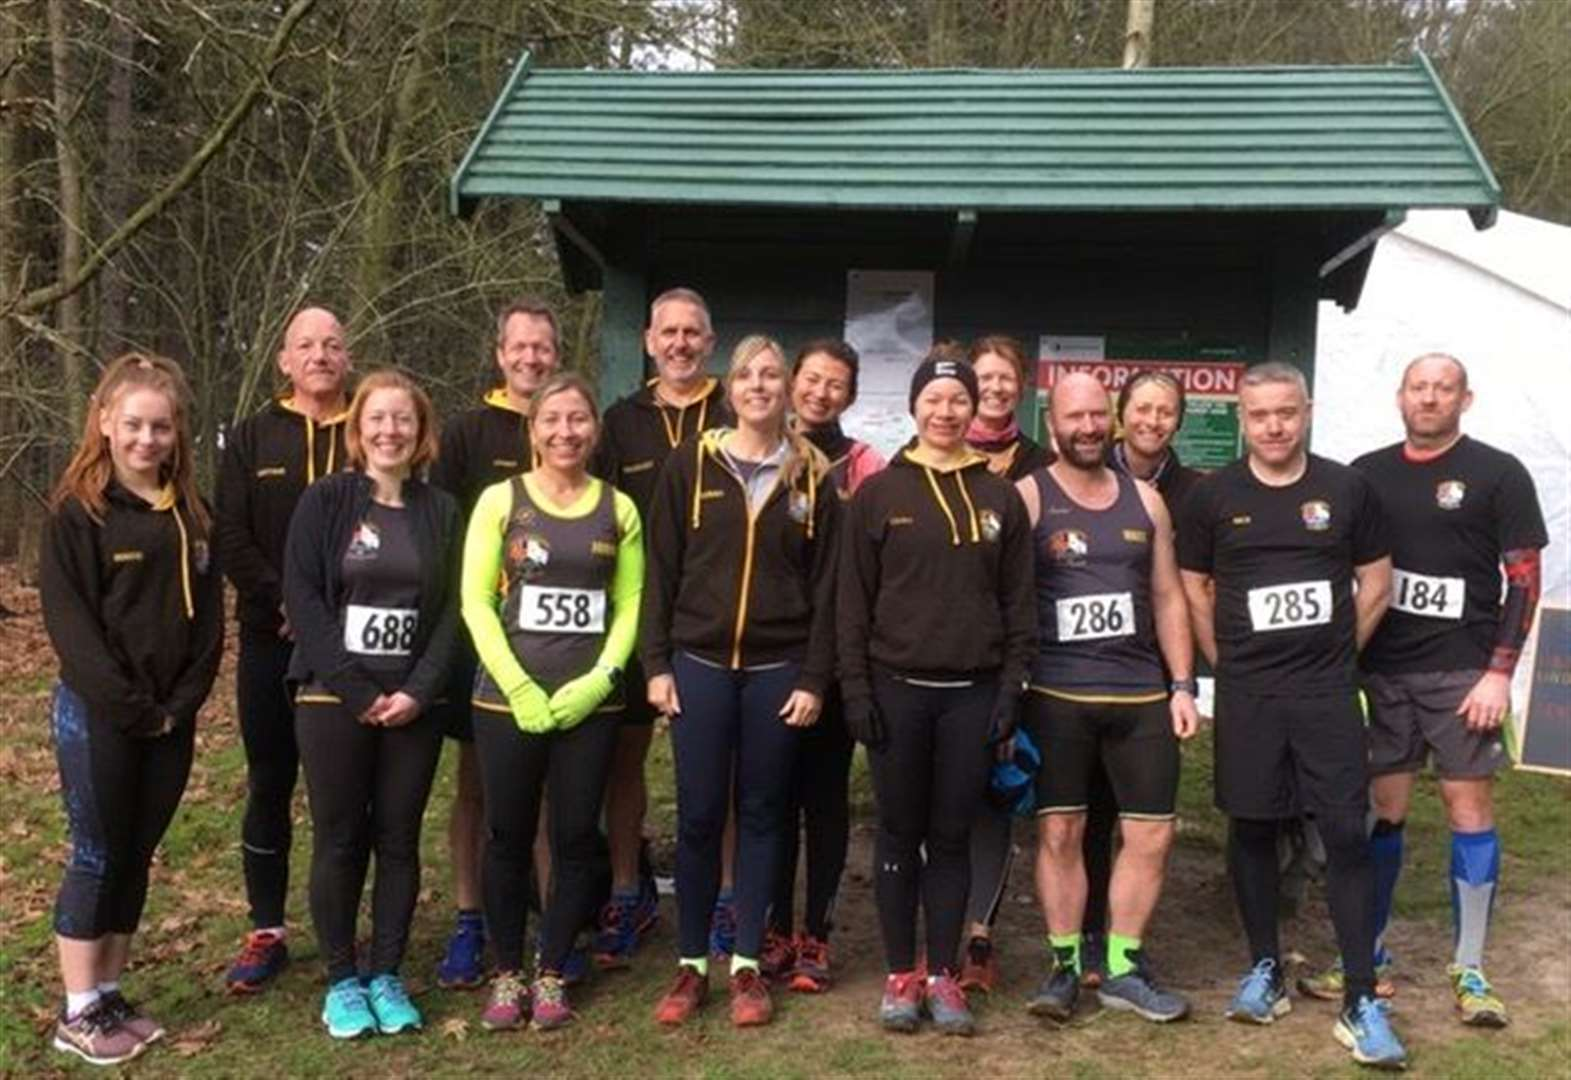 Three Counties runner posts Shouldham personal best time again